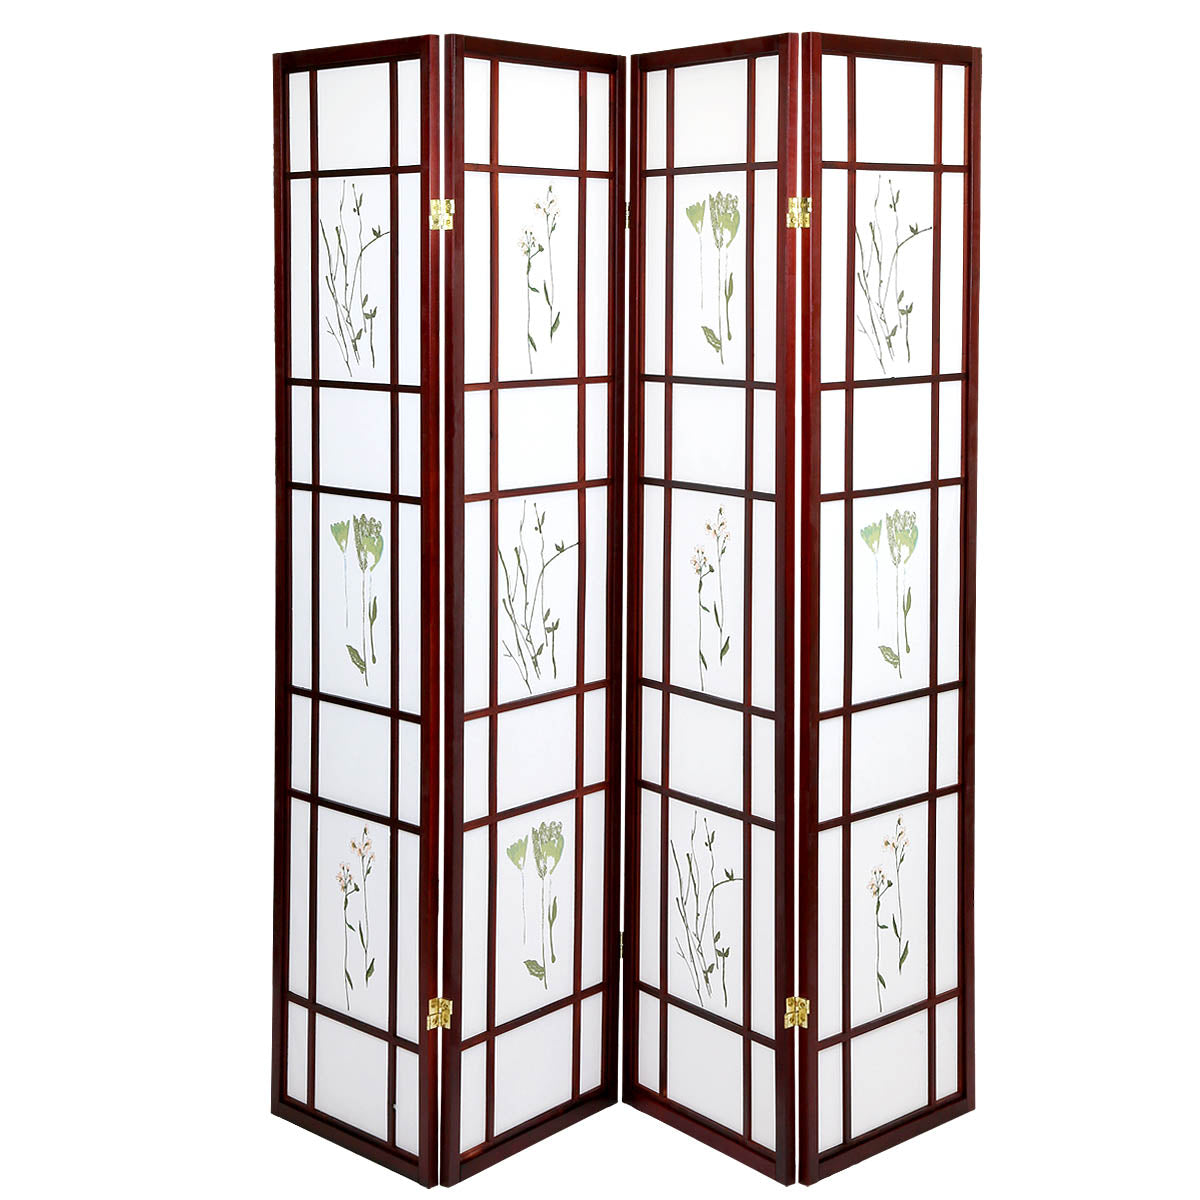 4 Panels Japanese Style Oriental Folding Room Divider Screen Hardwood Shoji Screen Room Separator Partition Wall Small Flowered Cherry